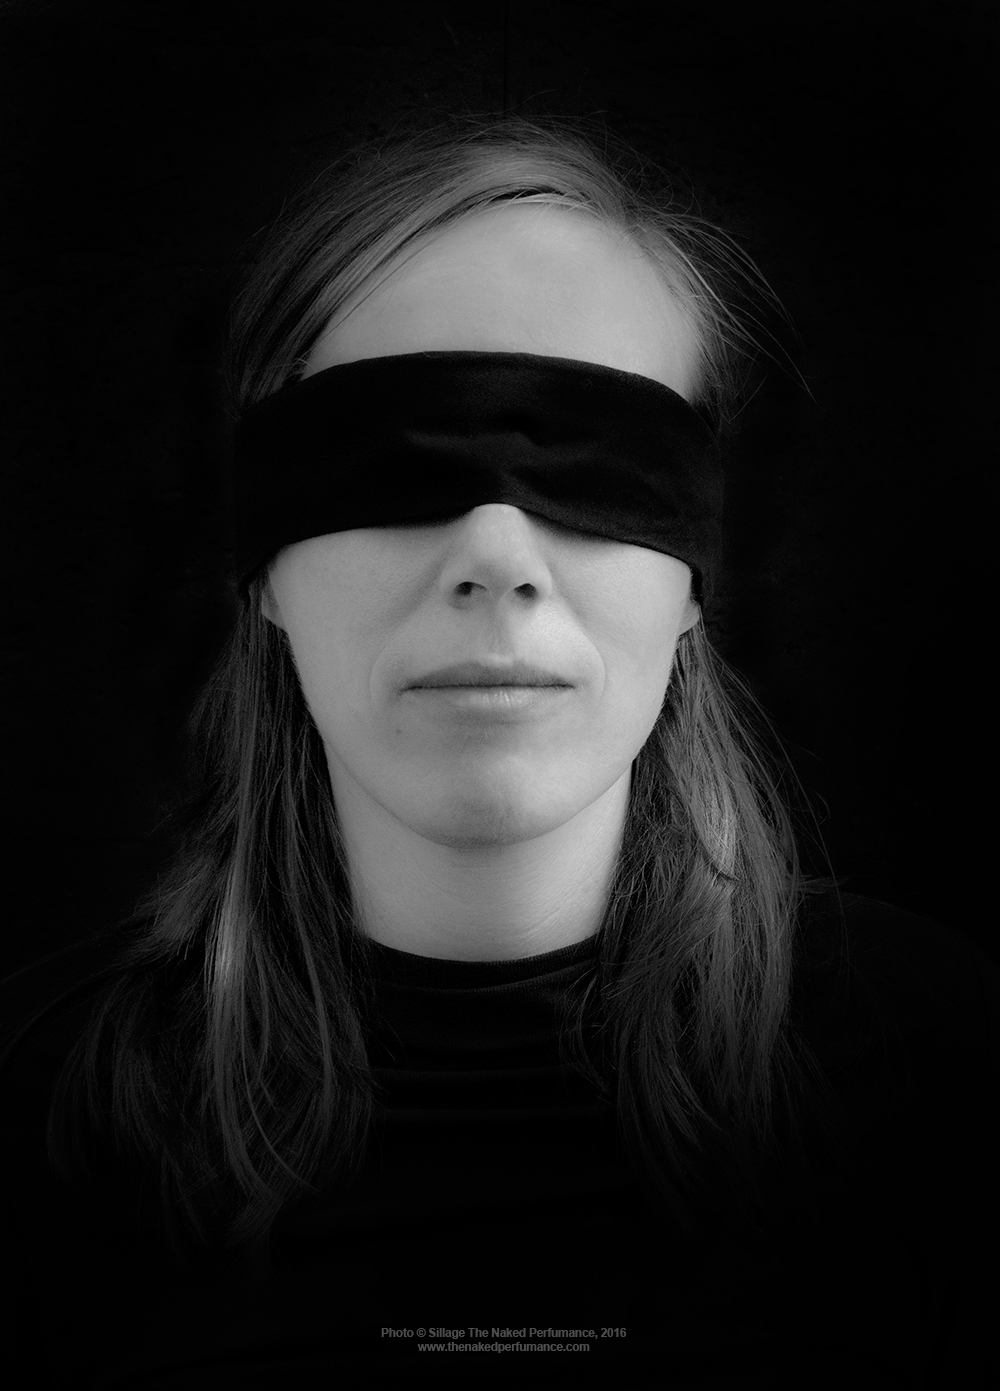 Blindfolded-Woman-1